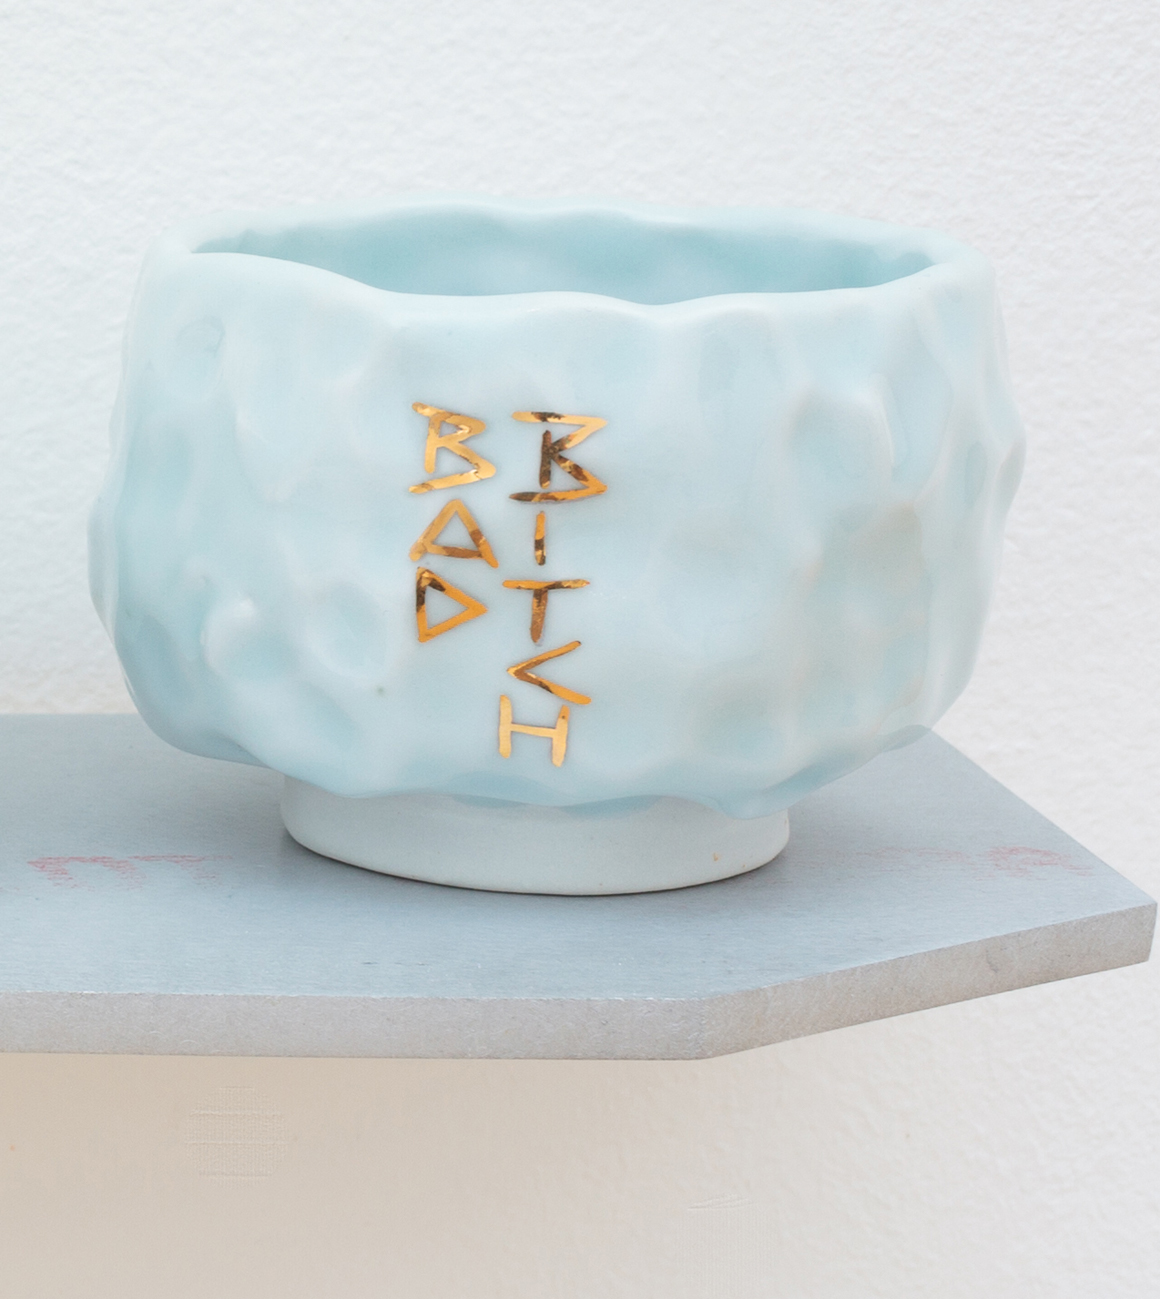 "<p><span class=""name"">Patrice Renee Washington</span><br><em>Bad Bitch Cup (1)</em><span class='media'>Glazed porcelain, gold luster, aluminum, Sculpey clay</span>2.5 x 3 x 3in<br>2016<br><a class='inquire' href='mailto:info@gildargallery.com?subject=Artwork Inquiry PWAS0002&body=I am interested in finding out more about Bad Bitch Cup (1) by Patrice Renee Washington'>Inquire</a></p>"